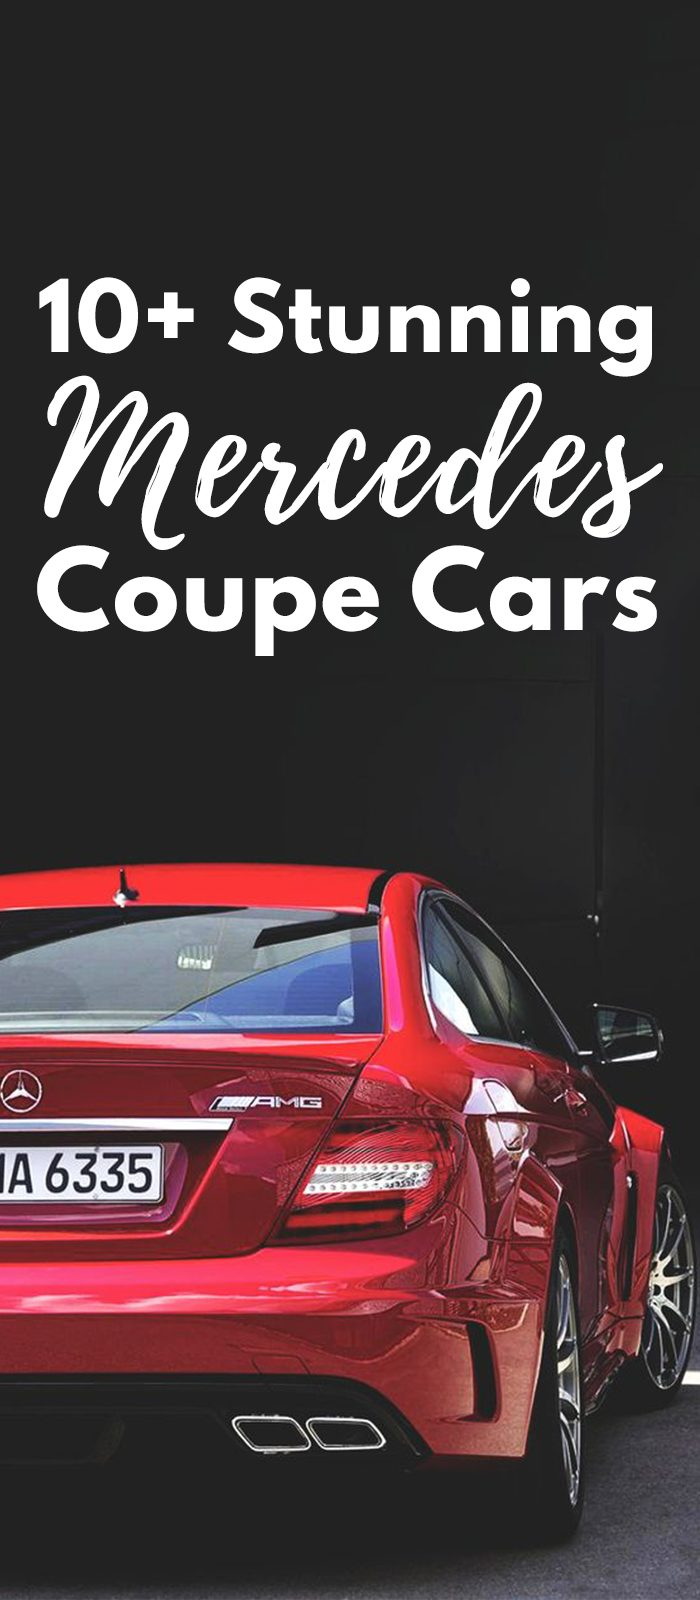 Stunning Mercedes Coupe Cars